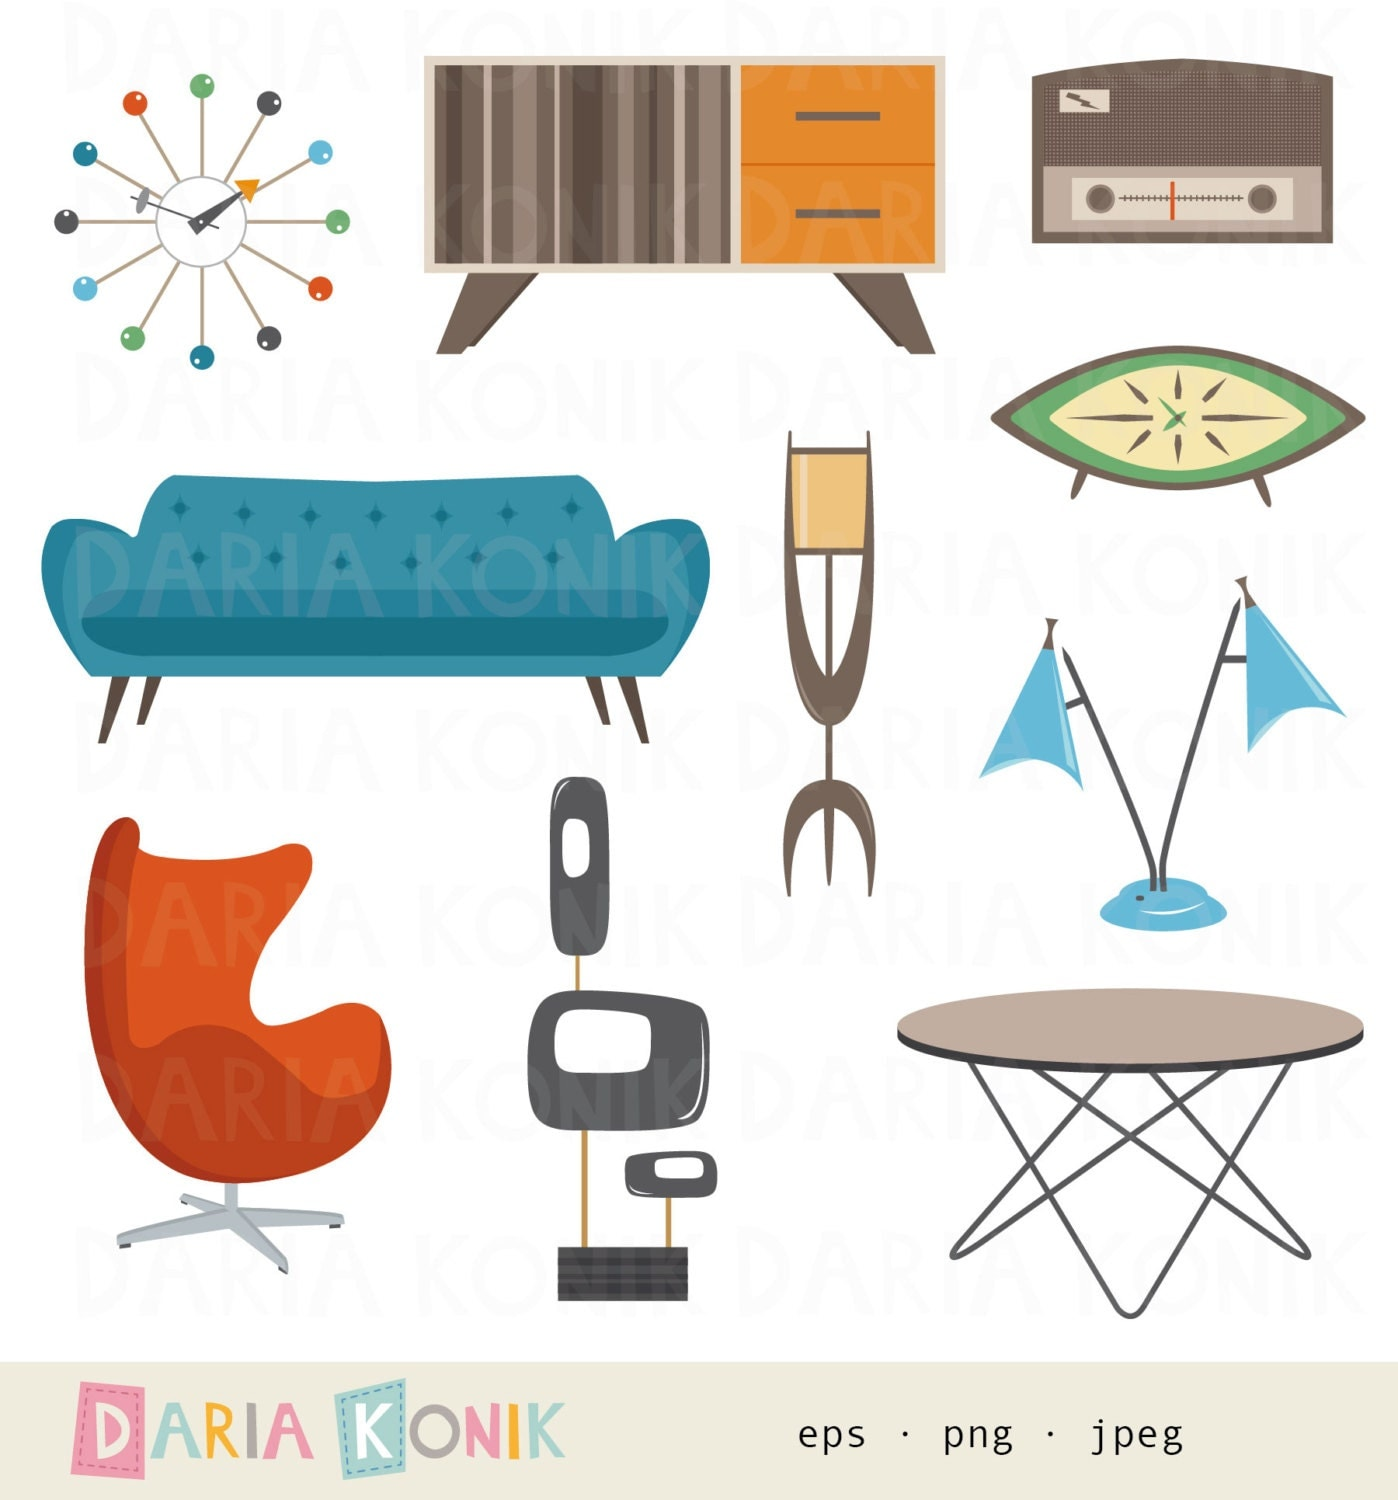 Retro m bel clipart set m bel atomic age lampe sofa for Interior house design clipart